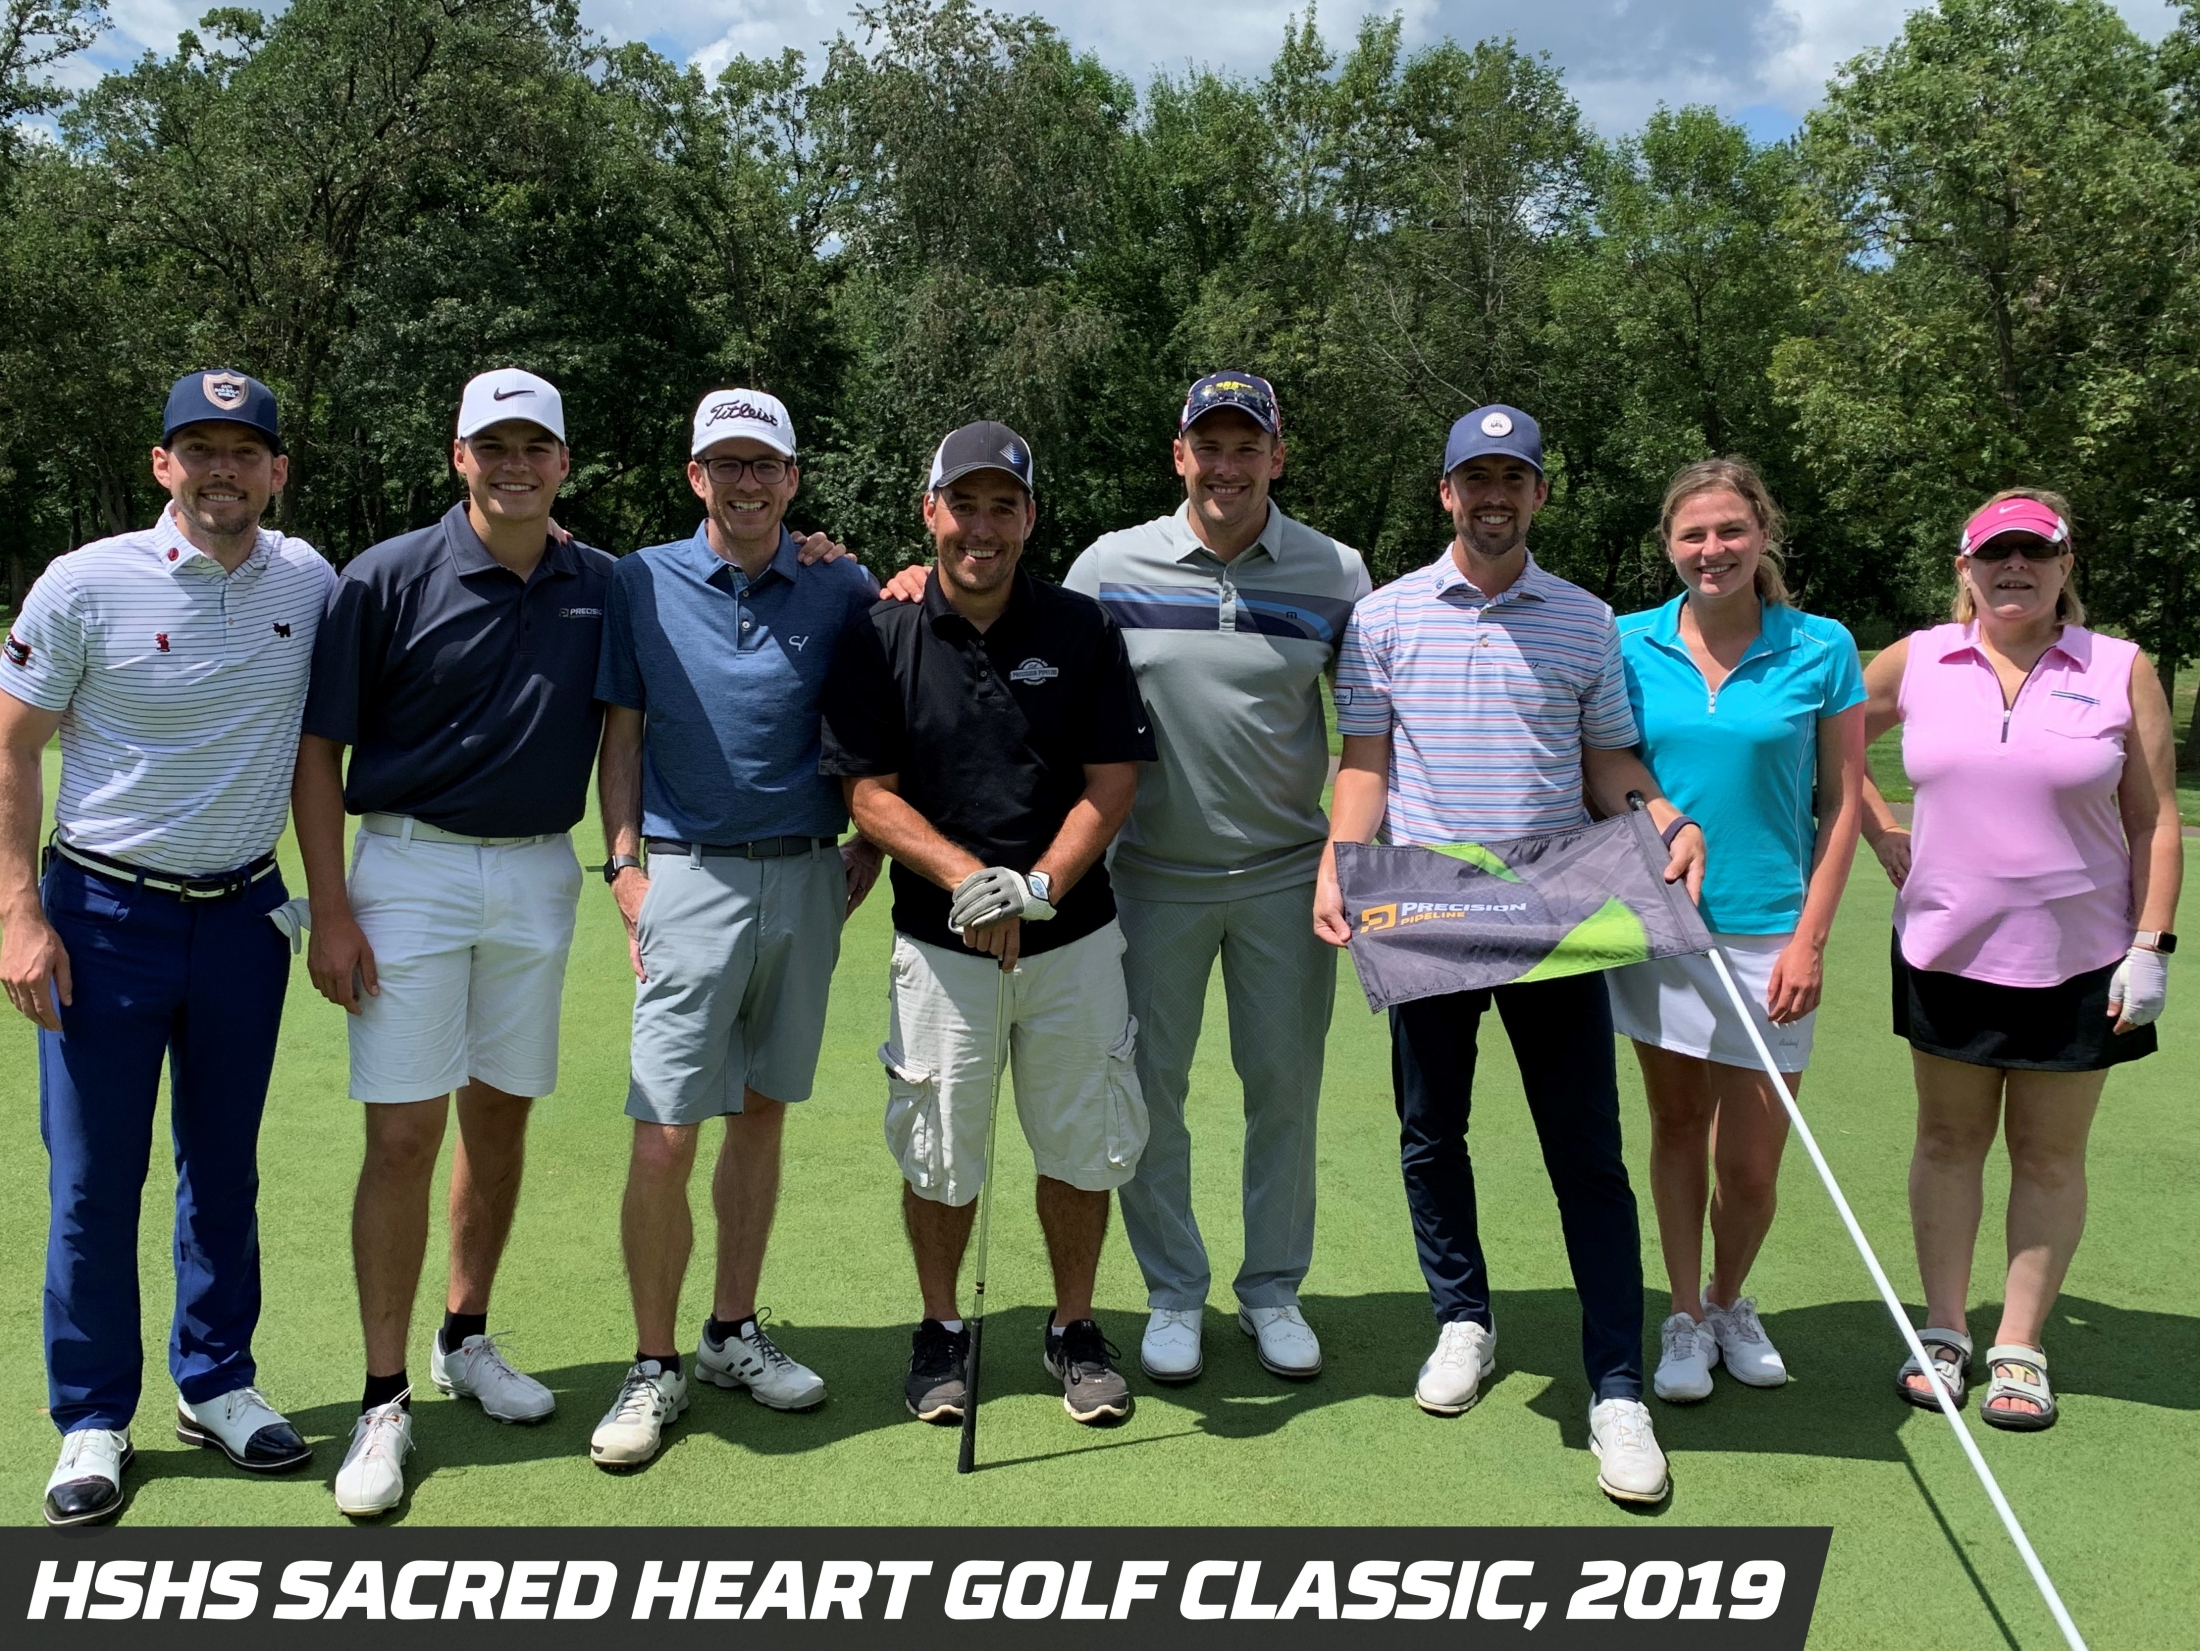 Precision Pipeline Community Involvement: HSHS Sacred Heart Golf Classic, 2019